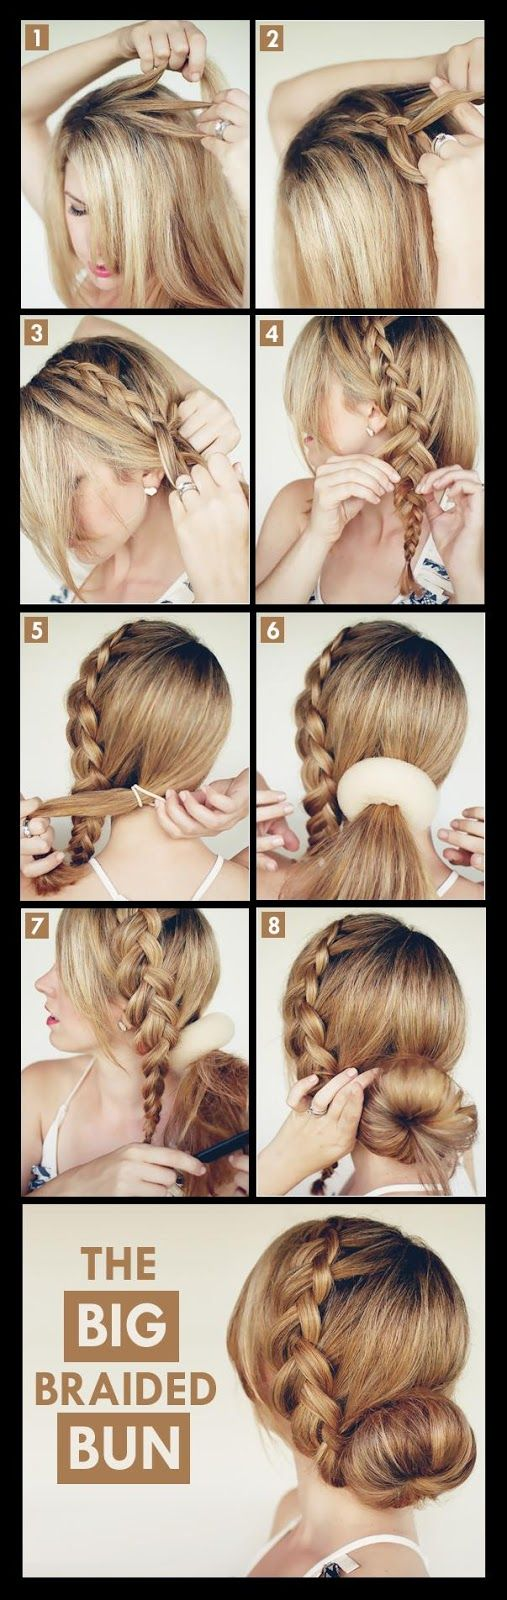 Make a big braided bun for your self hairstyles tutorial